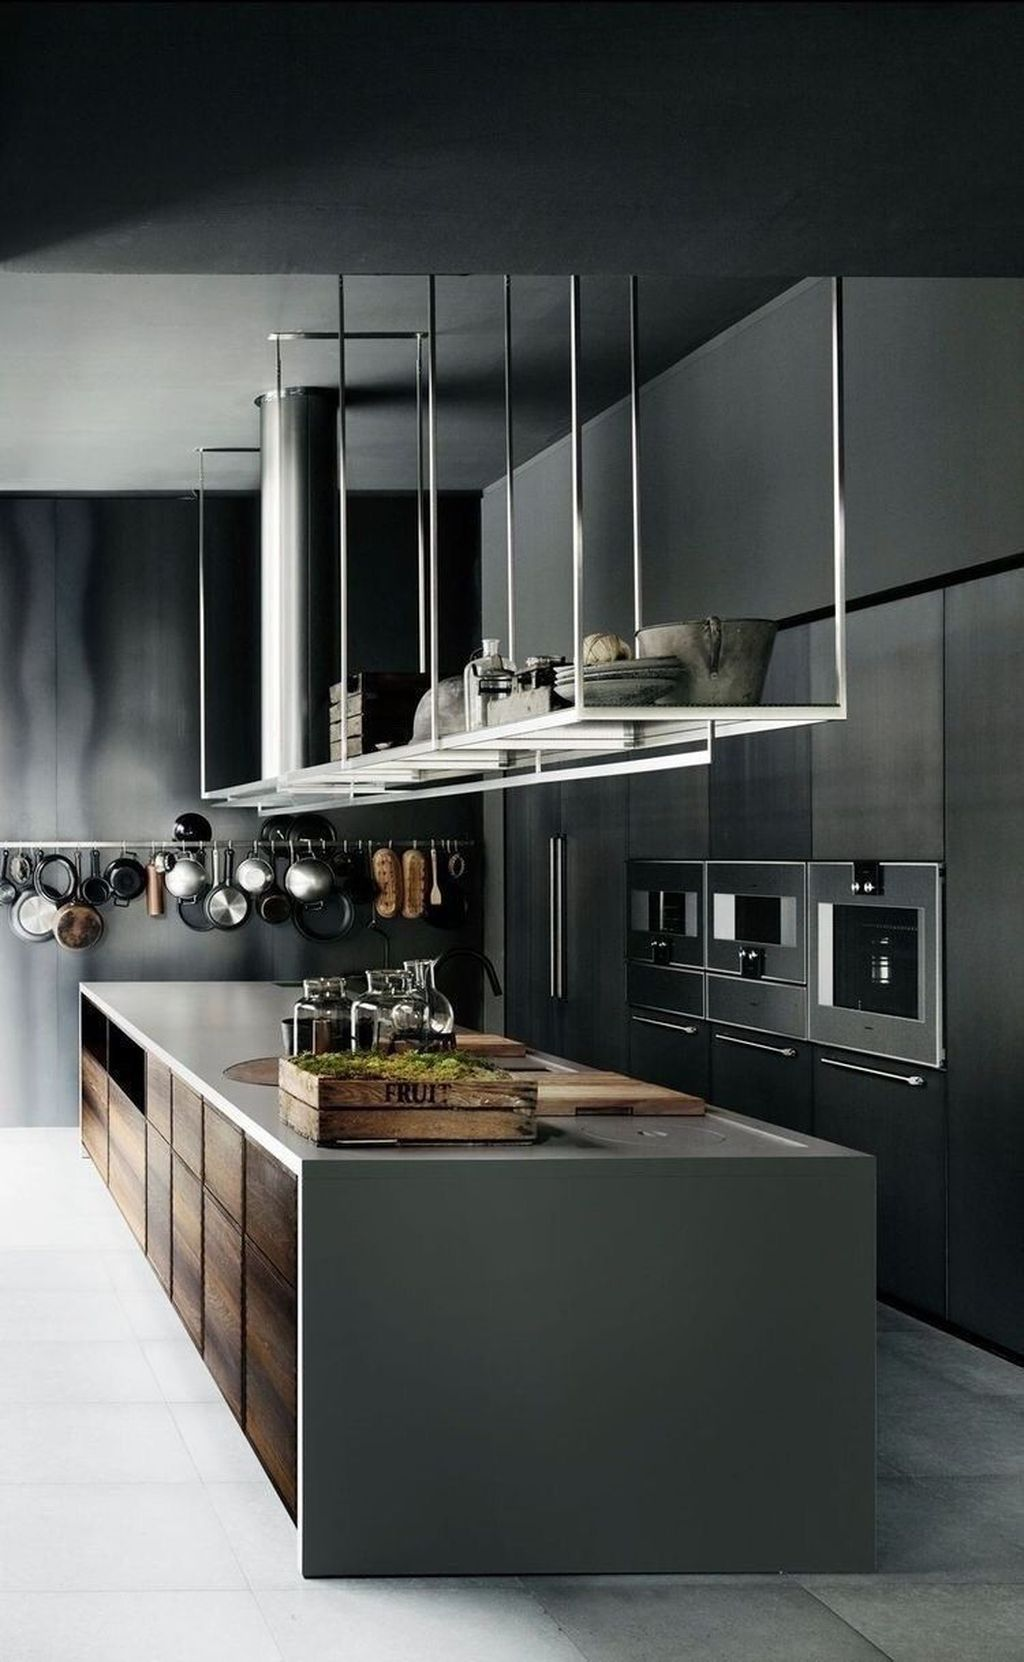 Simple Kitchen Design Ideas Right Here Are 26 Small As Well As Effective Kitchen Area Ideas A Luxury Kitchen Design Grey Kitchen Designs Best Kitchen Designs